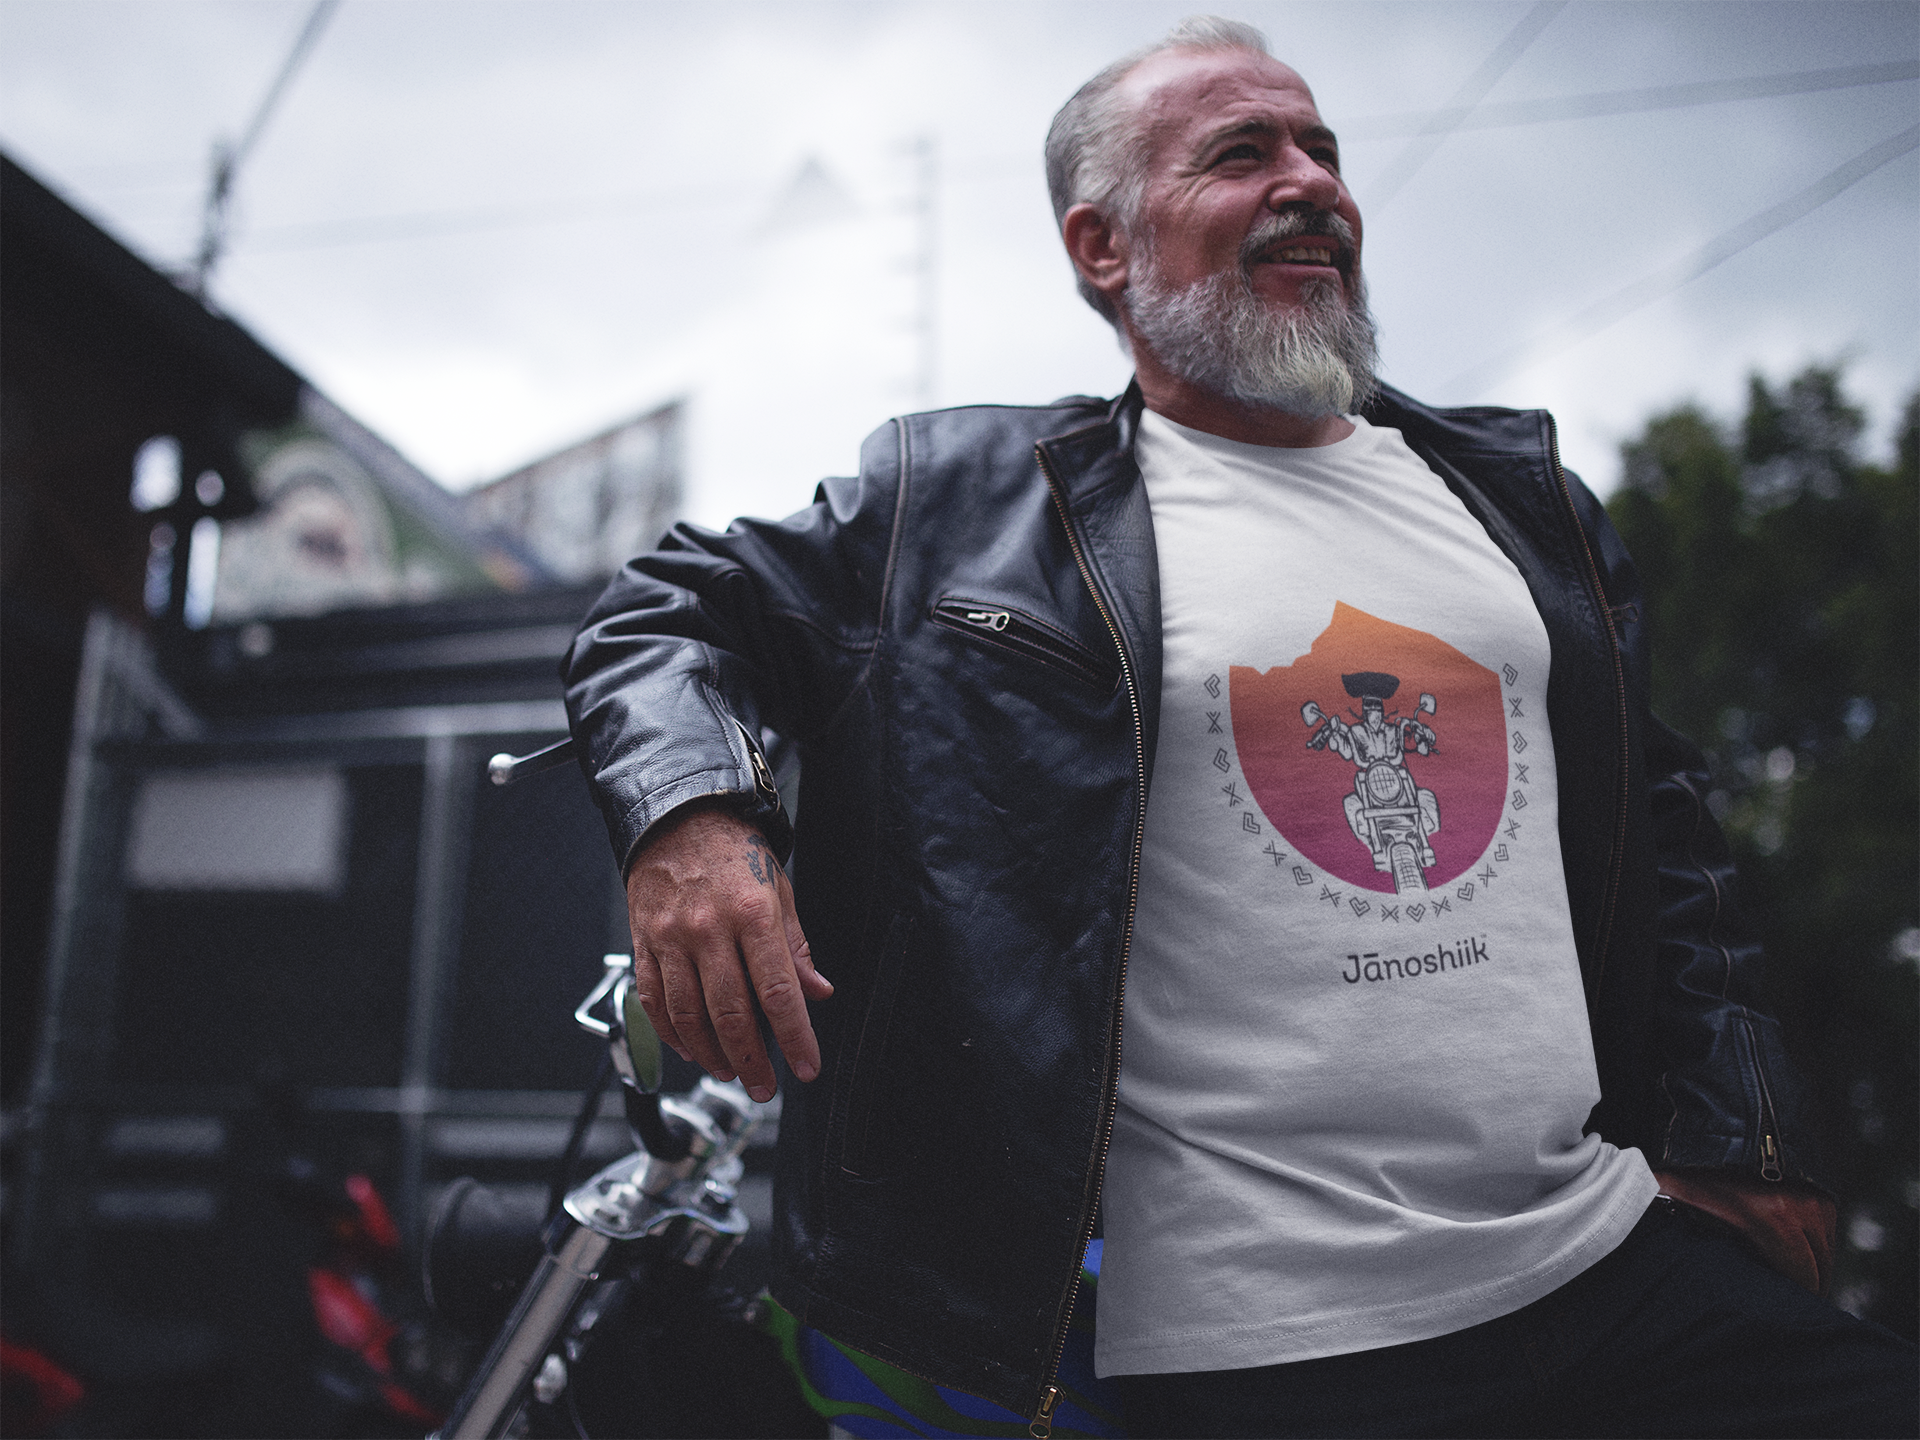 tee-mockup-of-a-biker-guy-with-a-leather-jacket-posing-a12059 (1)